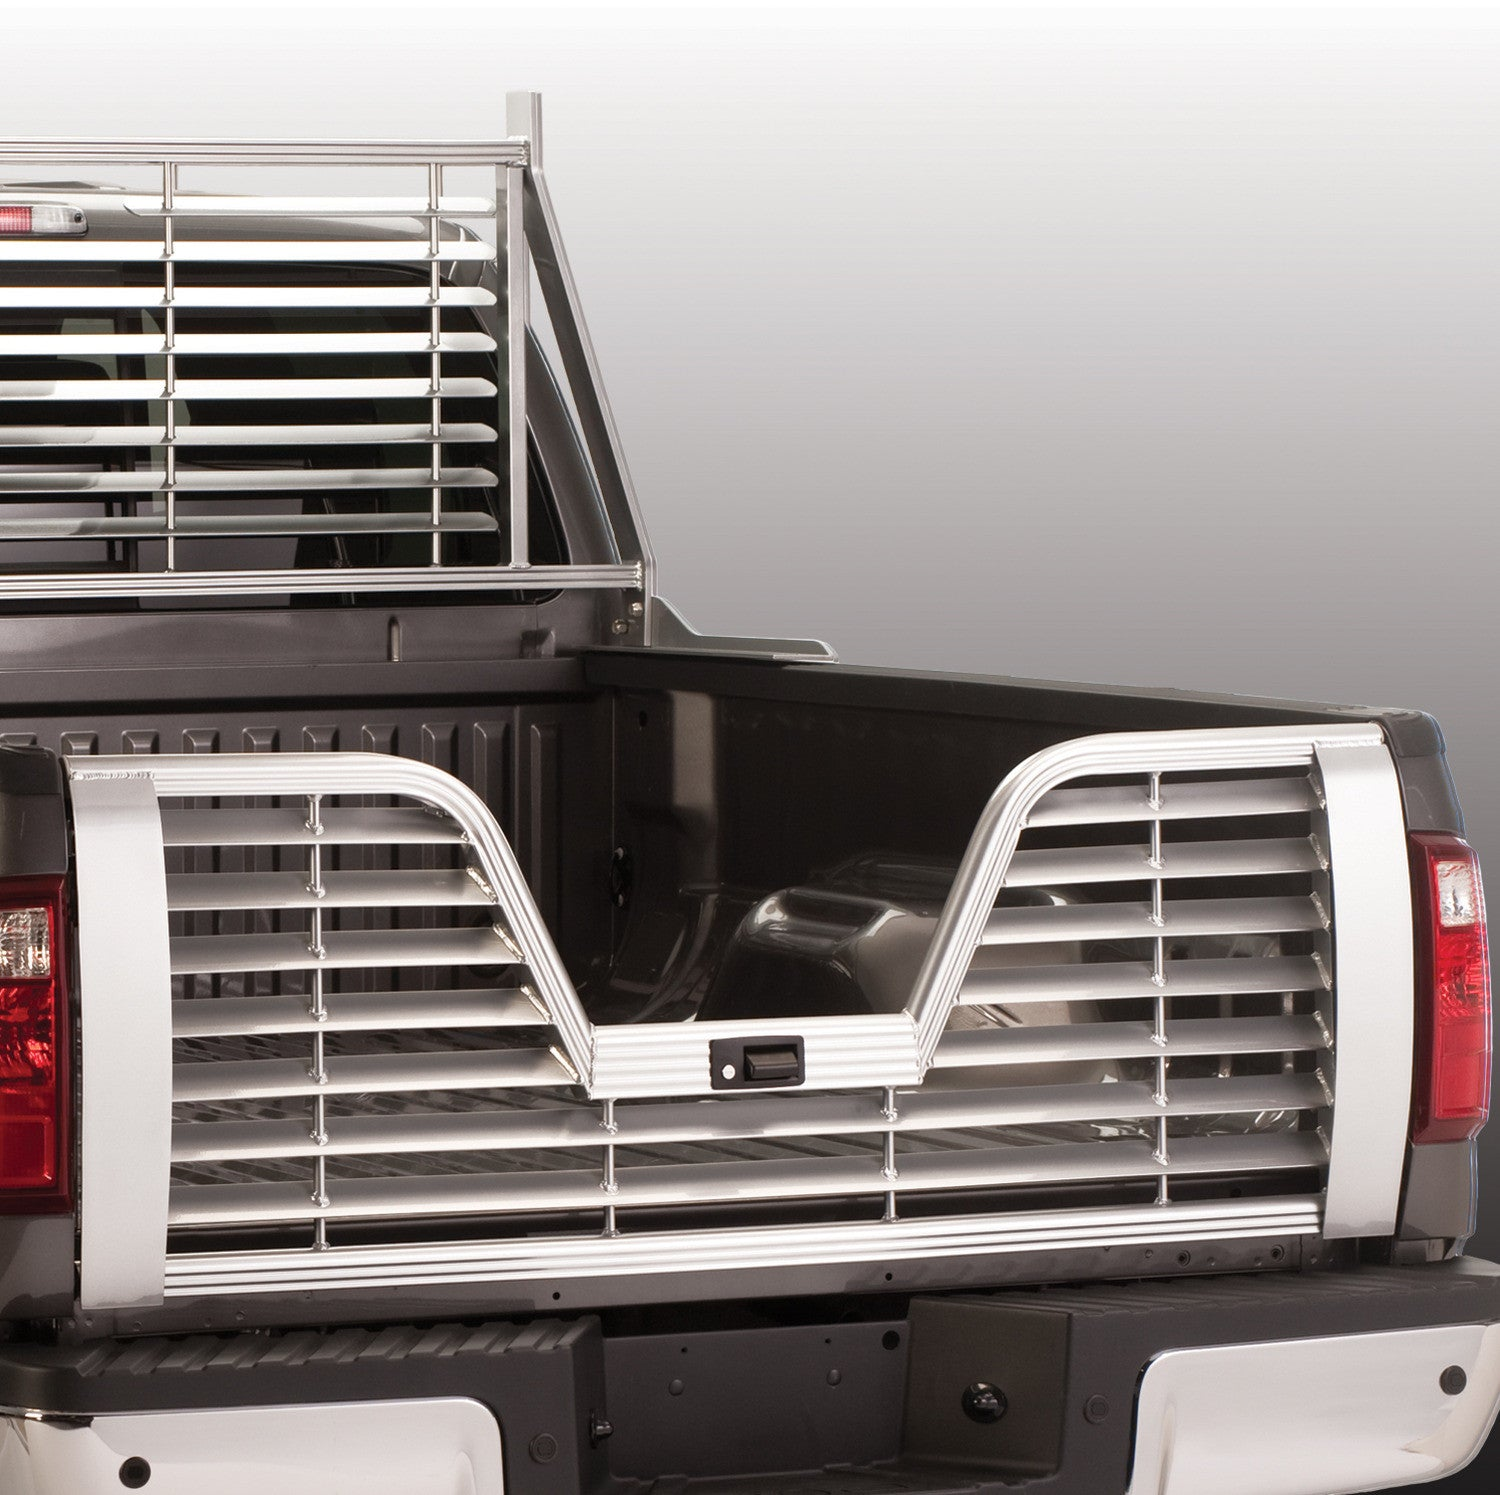 1997 ford f250 bed liner